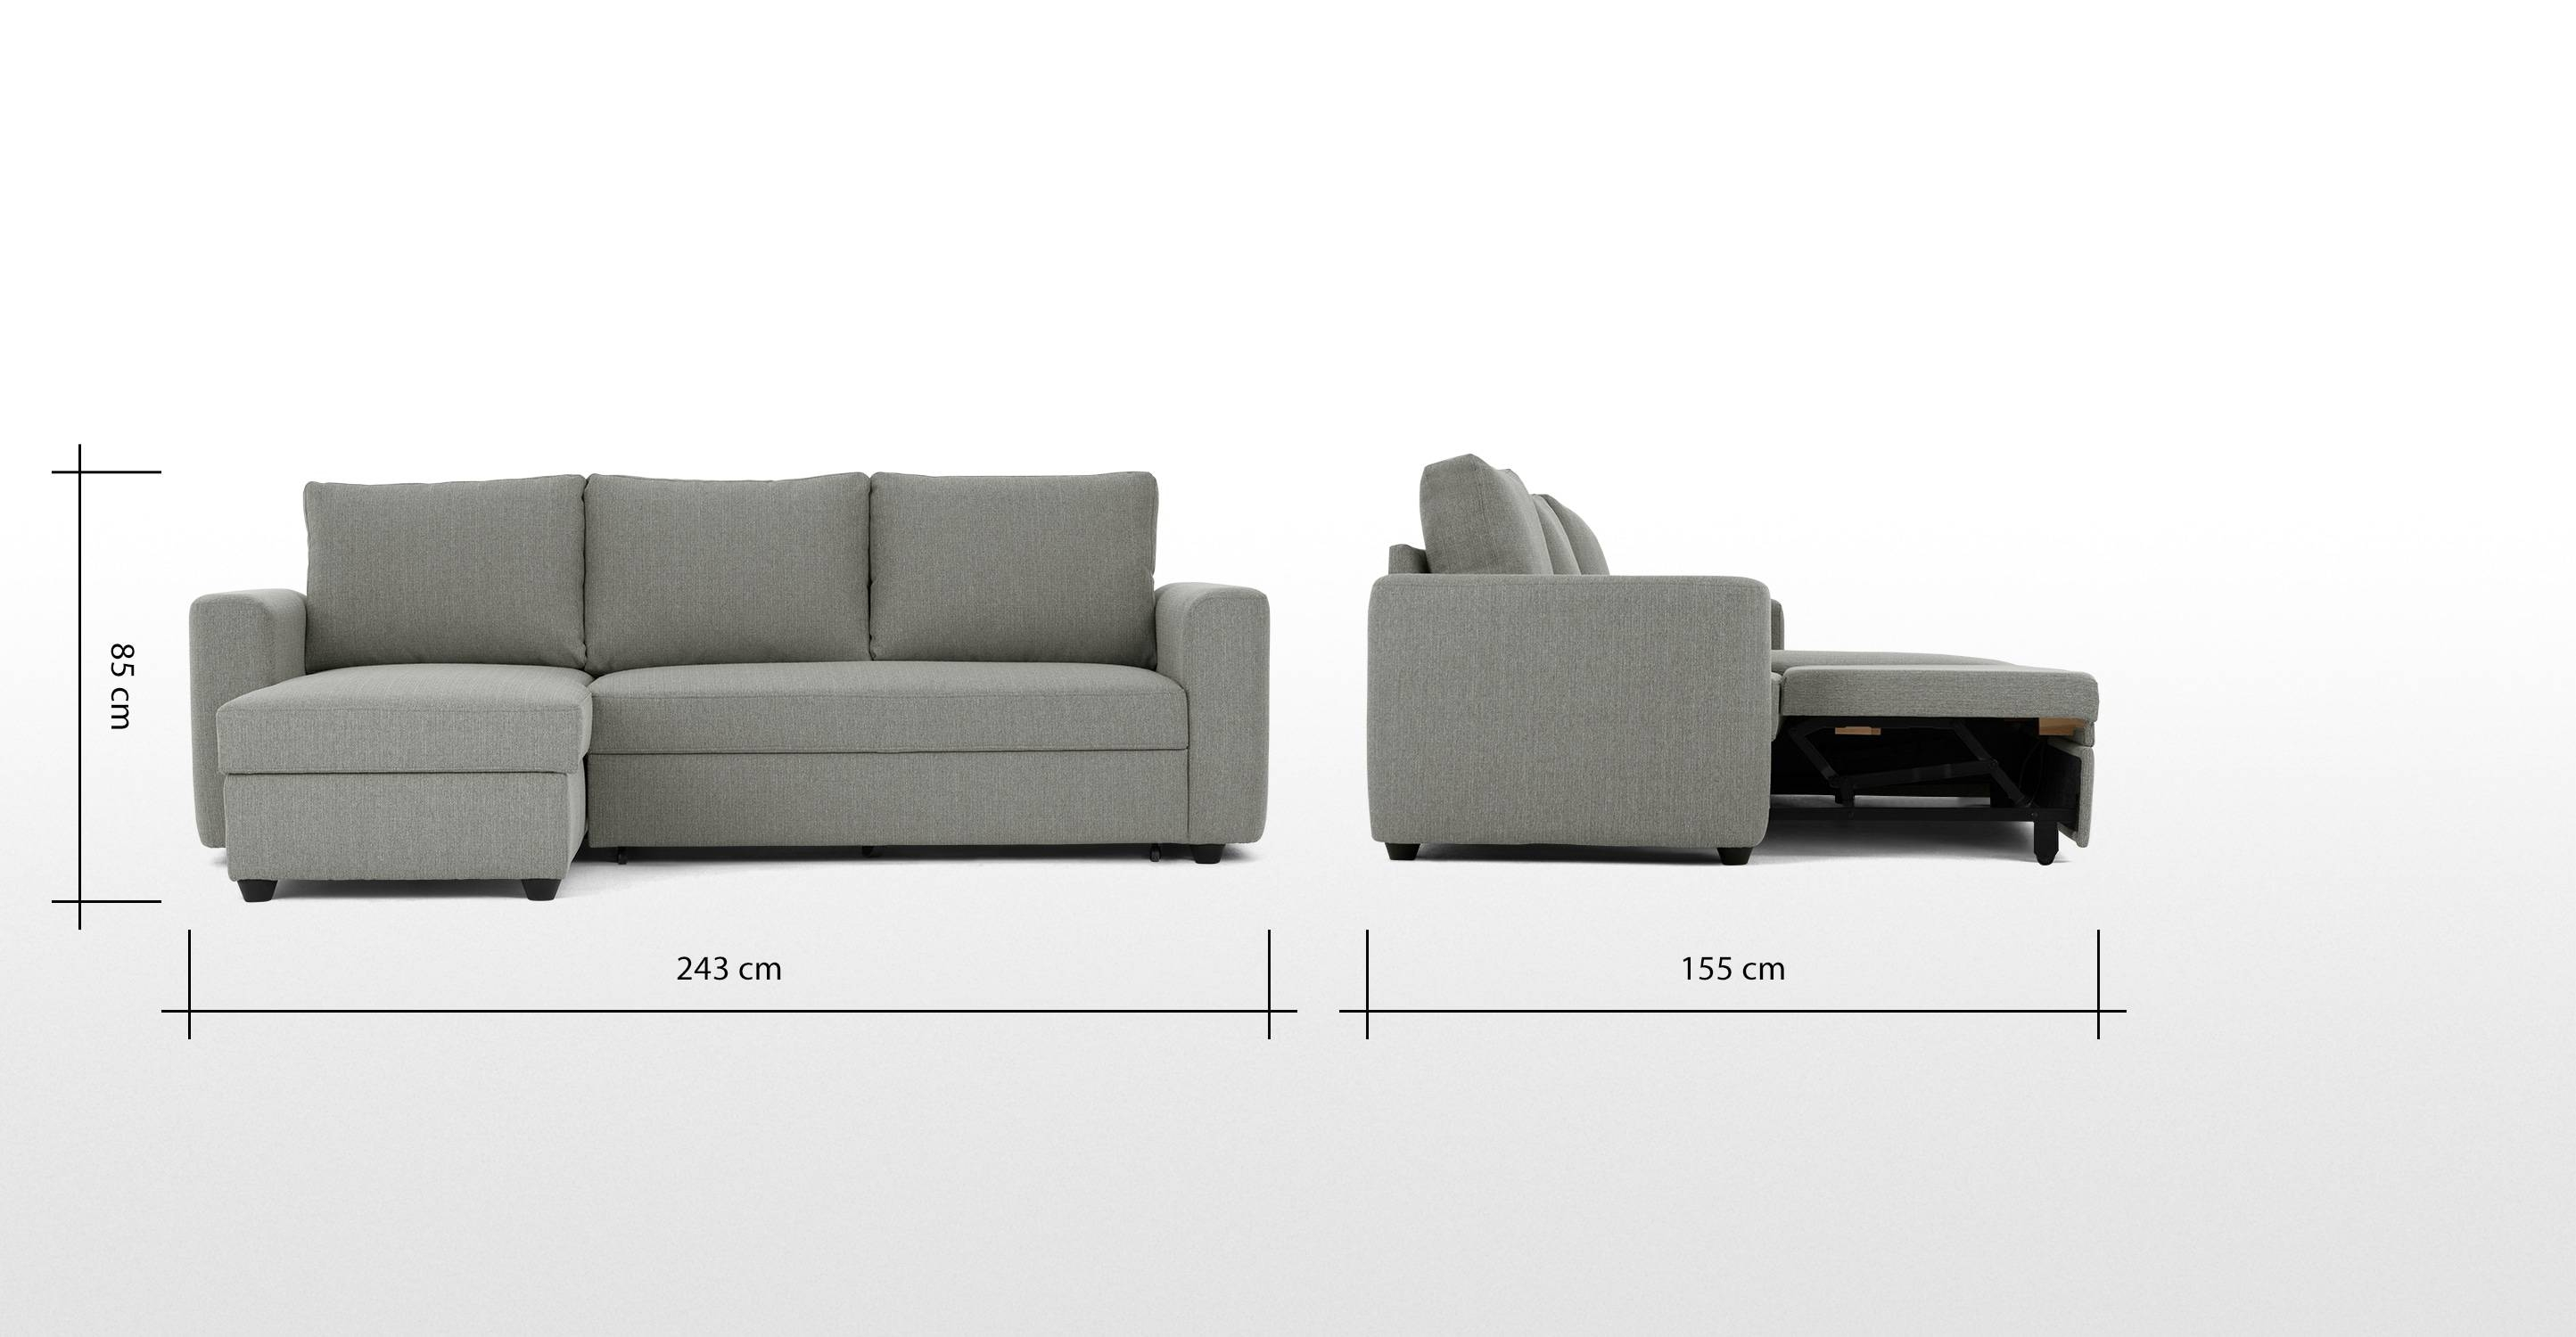 Aidian Corner Storage Sofa Bed, Silver Grey | Made regarding Sofa Beds With Storages (Image 2 of 30)